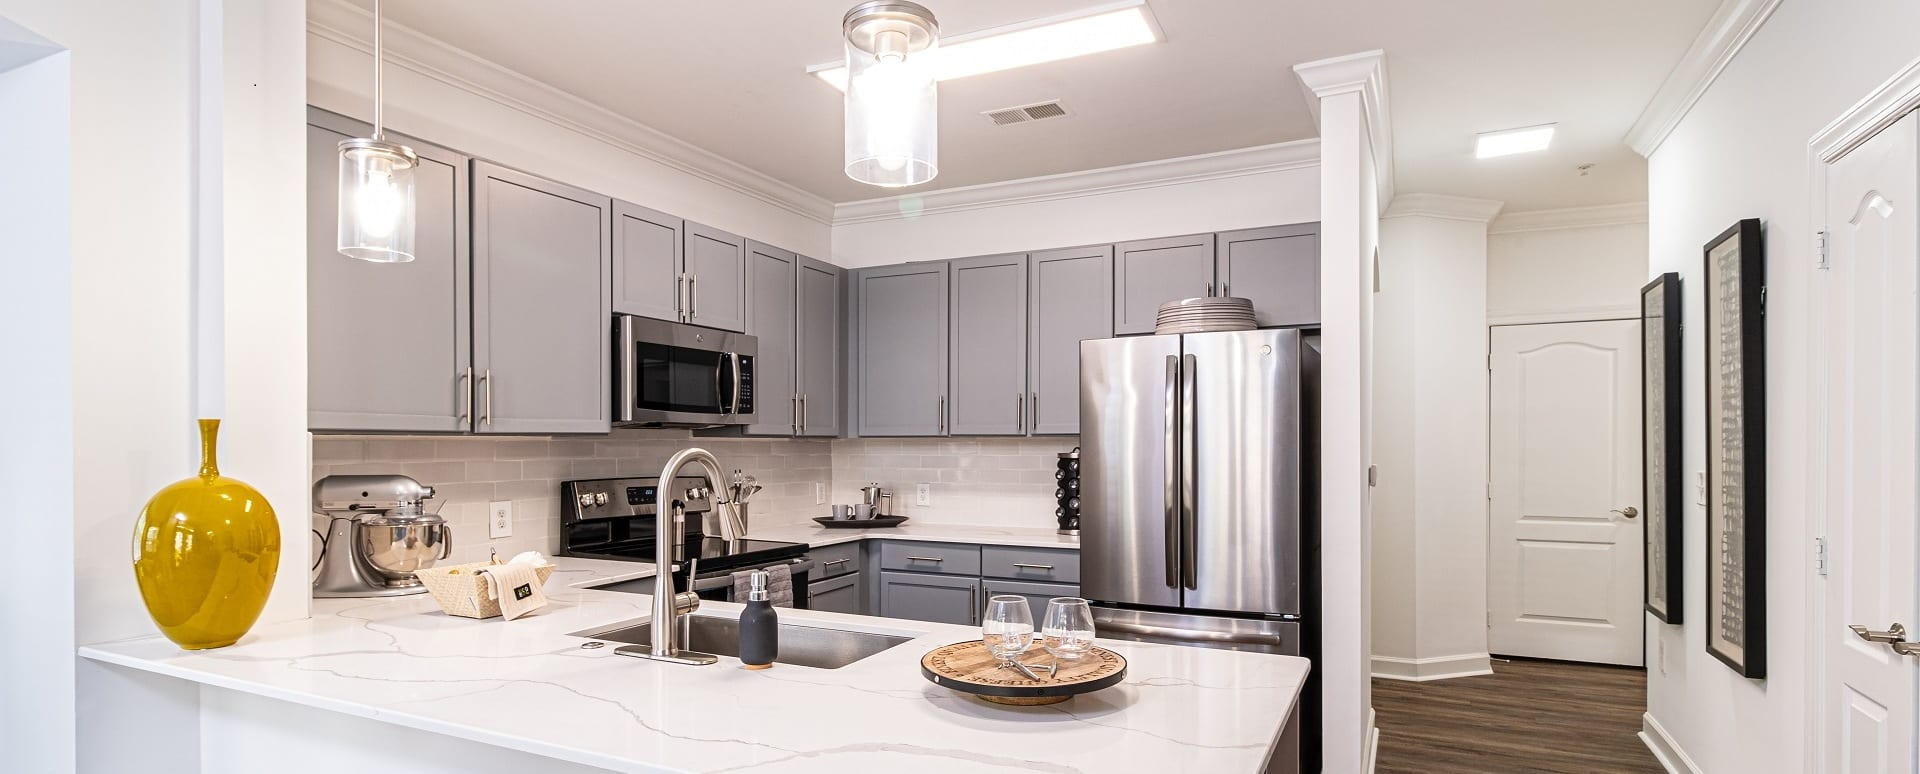 Upscale Kitchen With Quartz Breakfast Bar And Modern Lighting At Our North Druid Hills Apartments